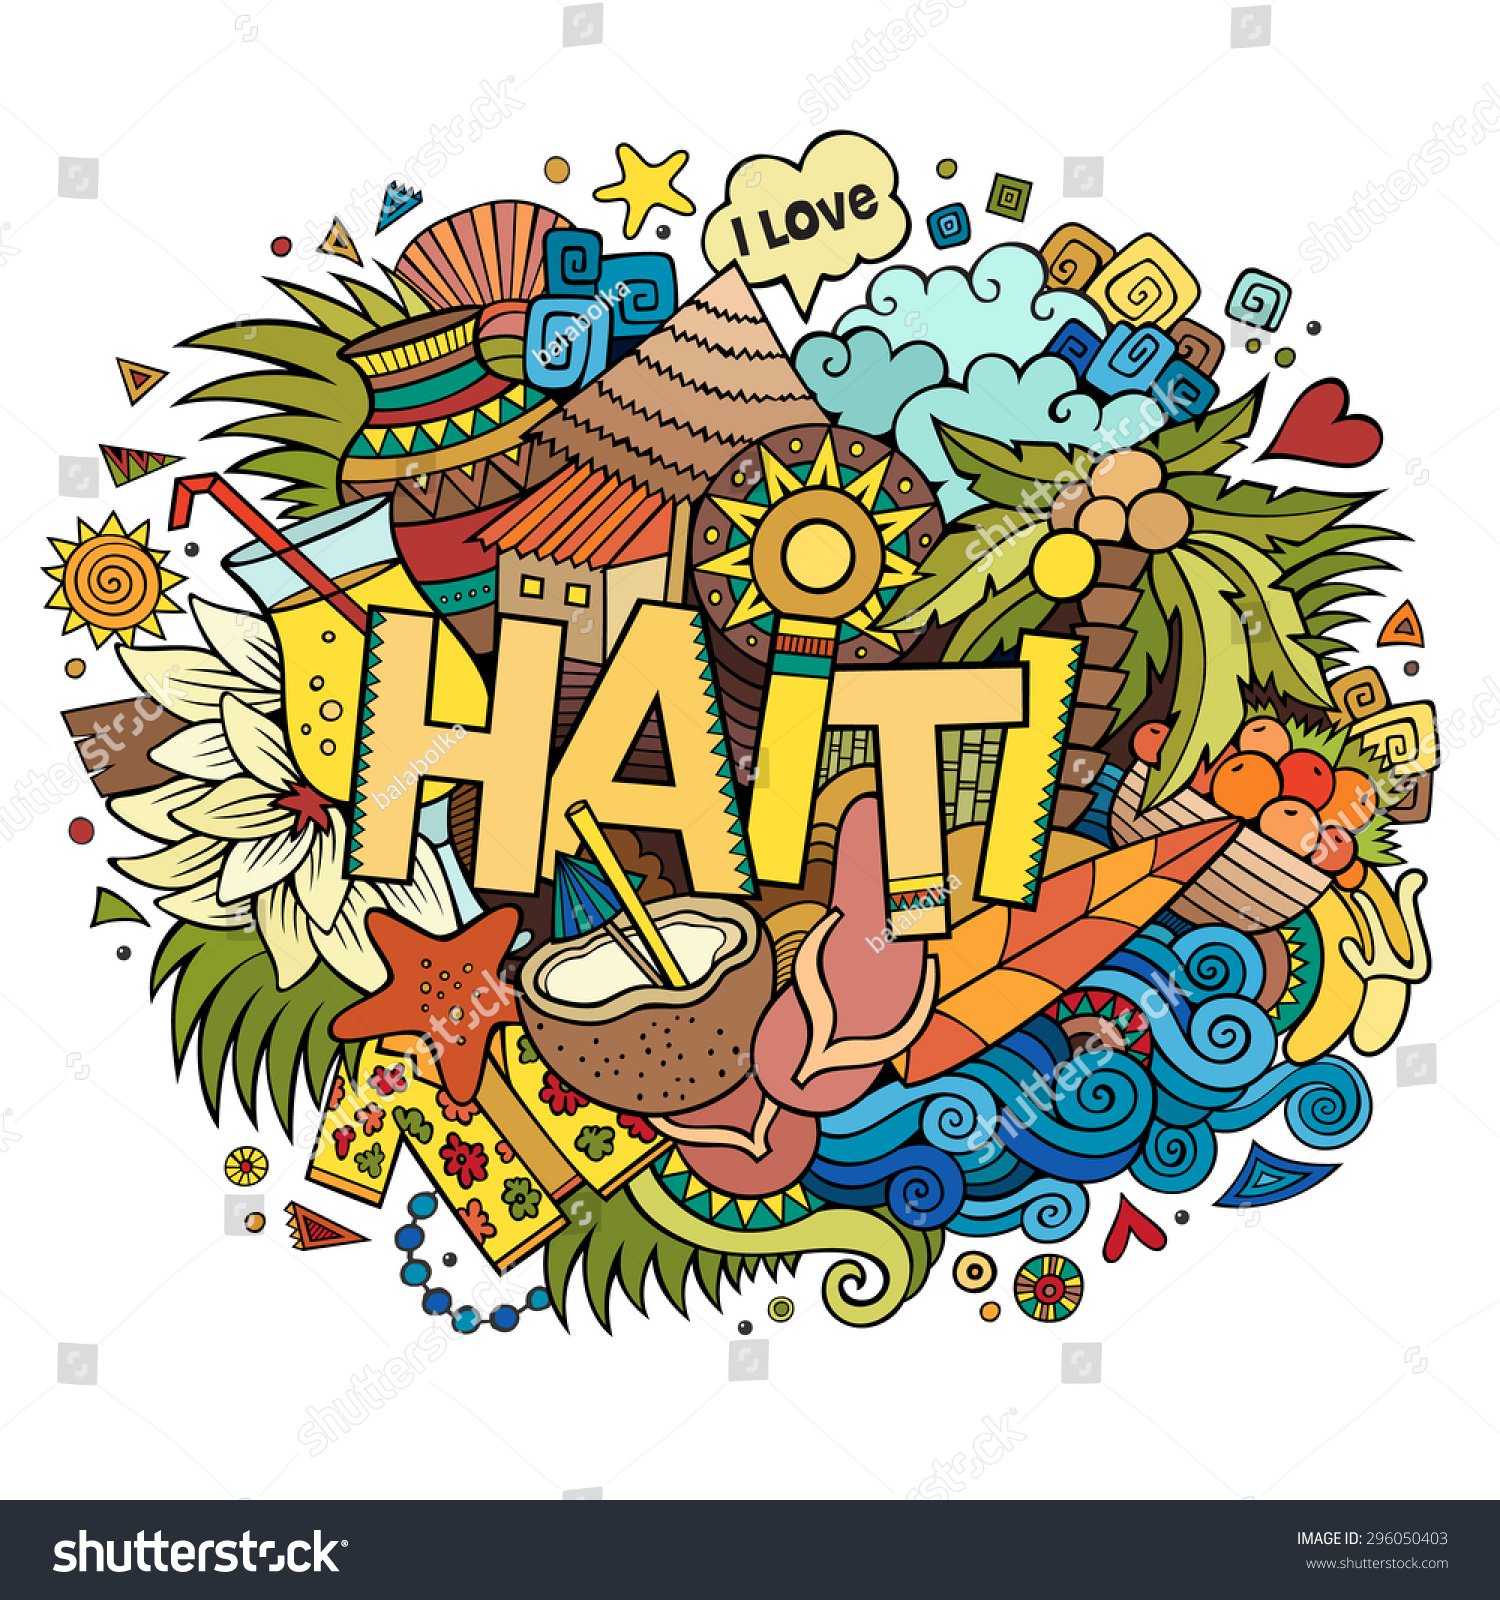 Stock vector music hand lettering and doodles elements - Haiti Hand Lettering And Doodles Elements And Symbols Background Vector Hand Drawn Illustration